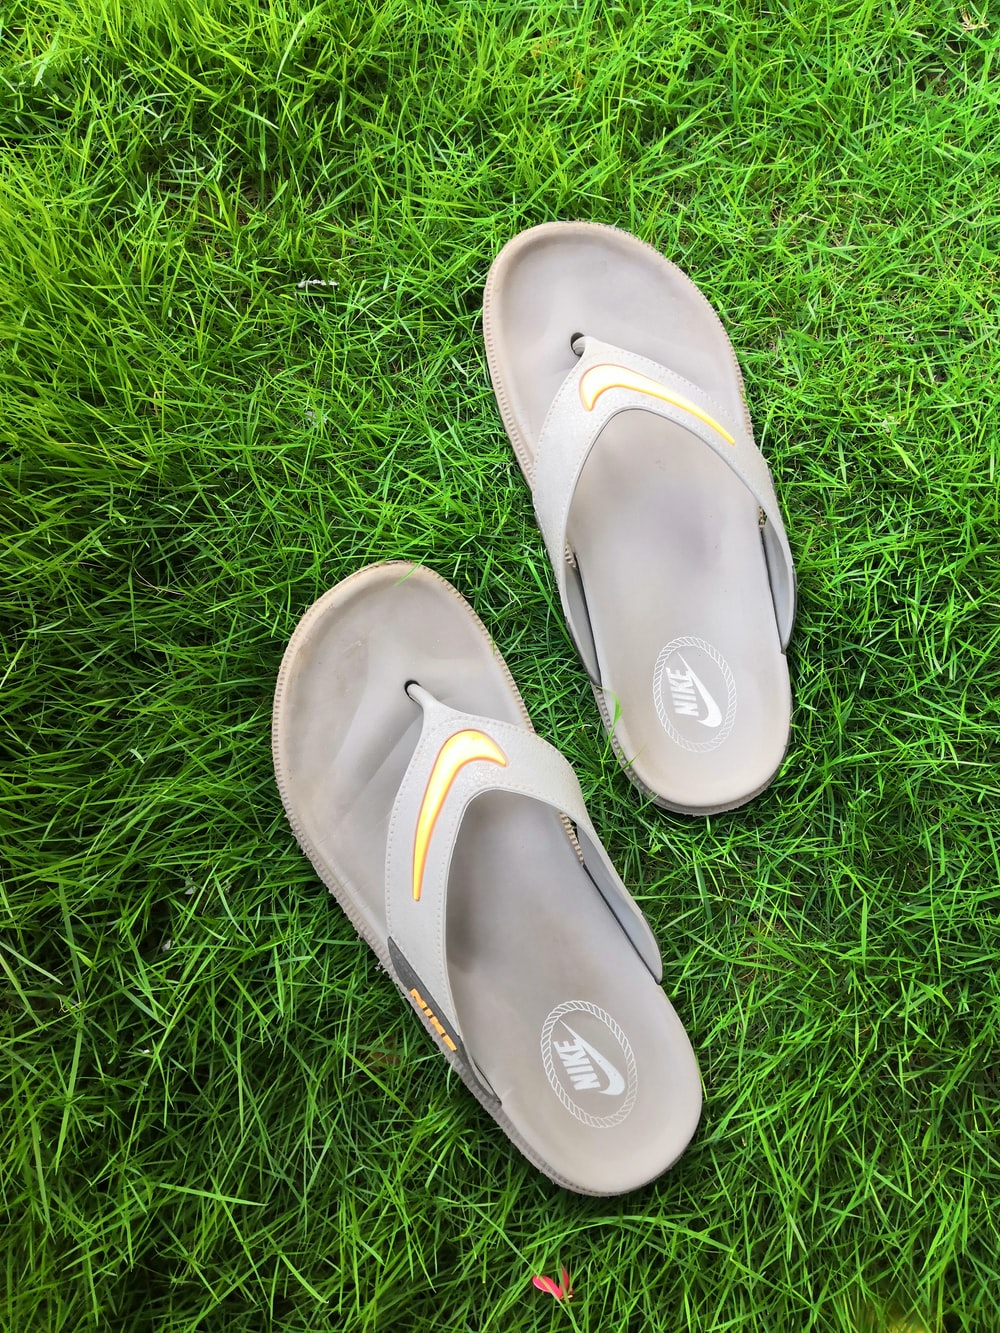 pair of gray T-strap sandals on green field